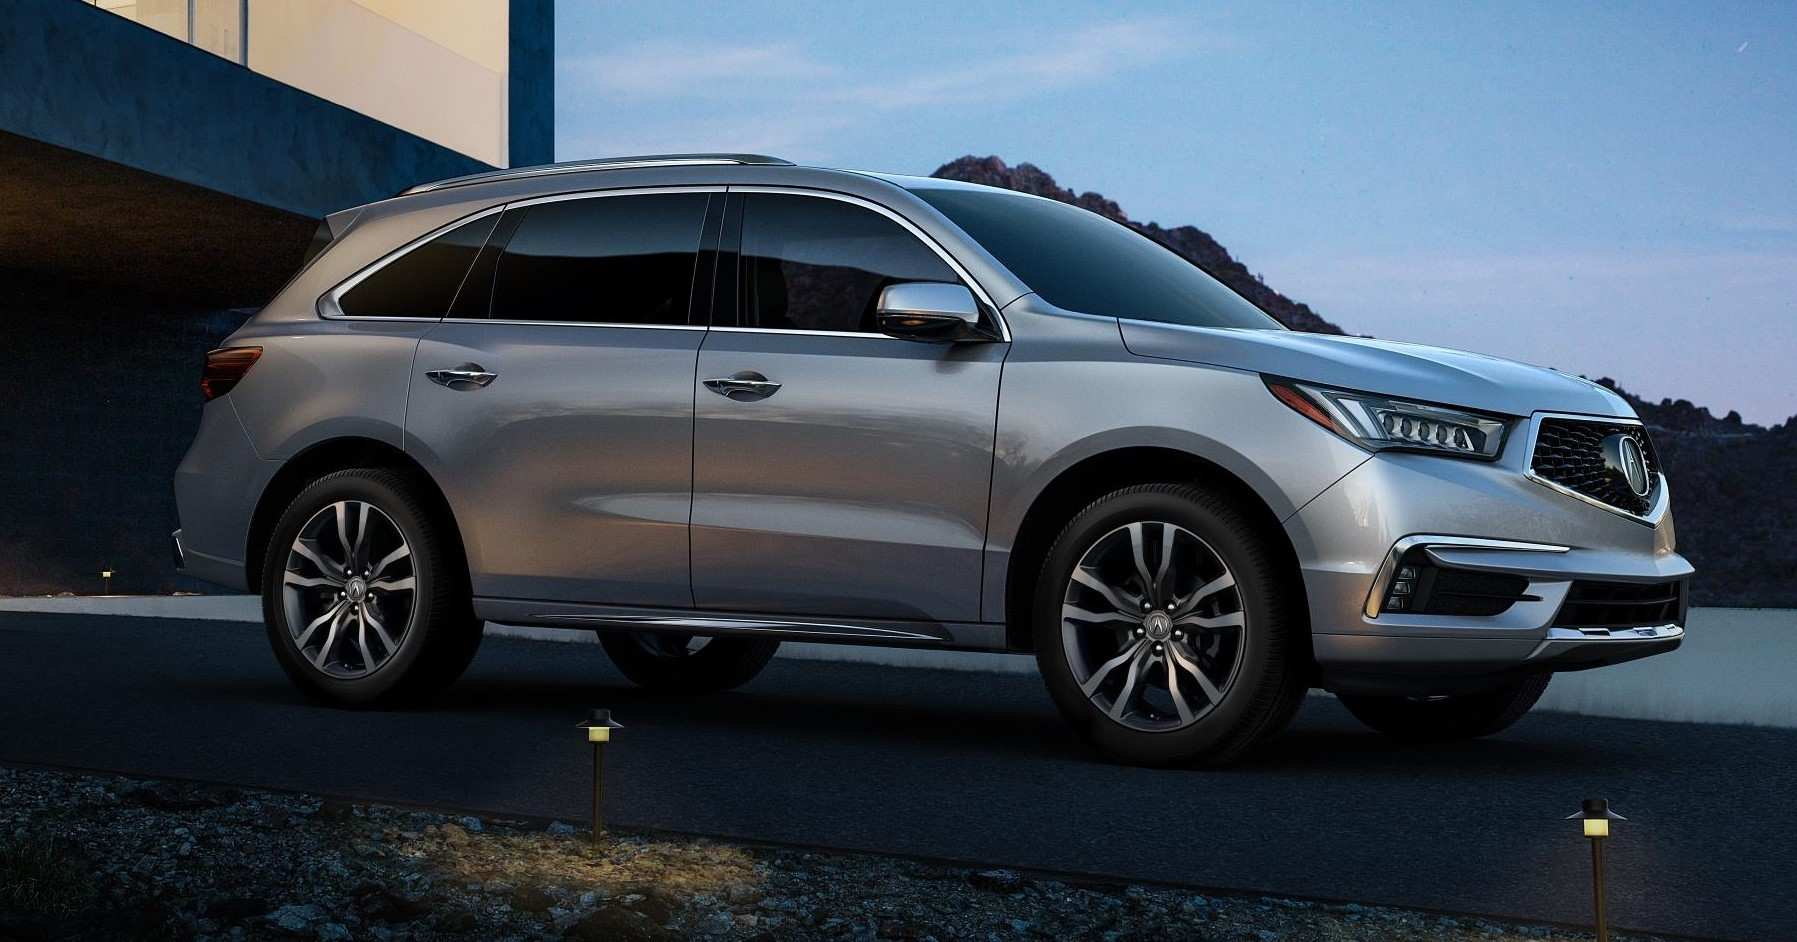 17 The Best Acura Mdx 2019 Release Date Price And Review Photos with Best Acura Mdx 2019 Release Date Price And Review